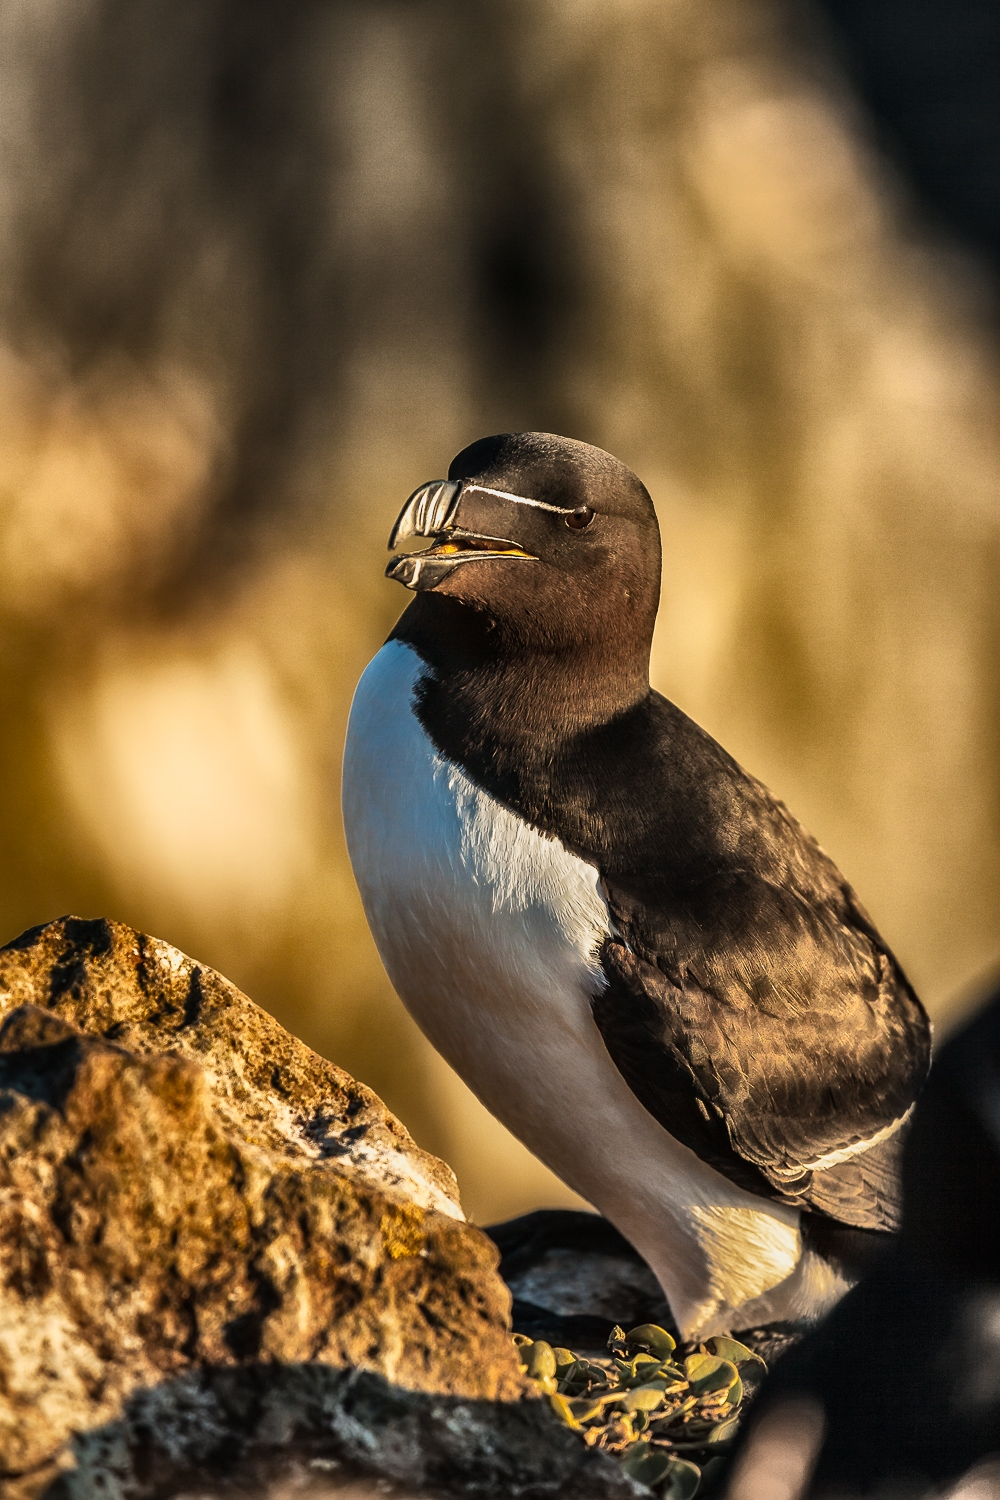 A Razorbill bathed in warm, end of day light on the Látrabjarg Cliffs, in far western Iceland.